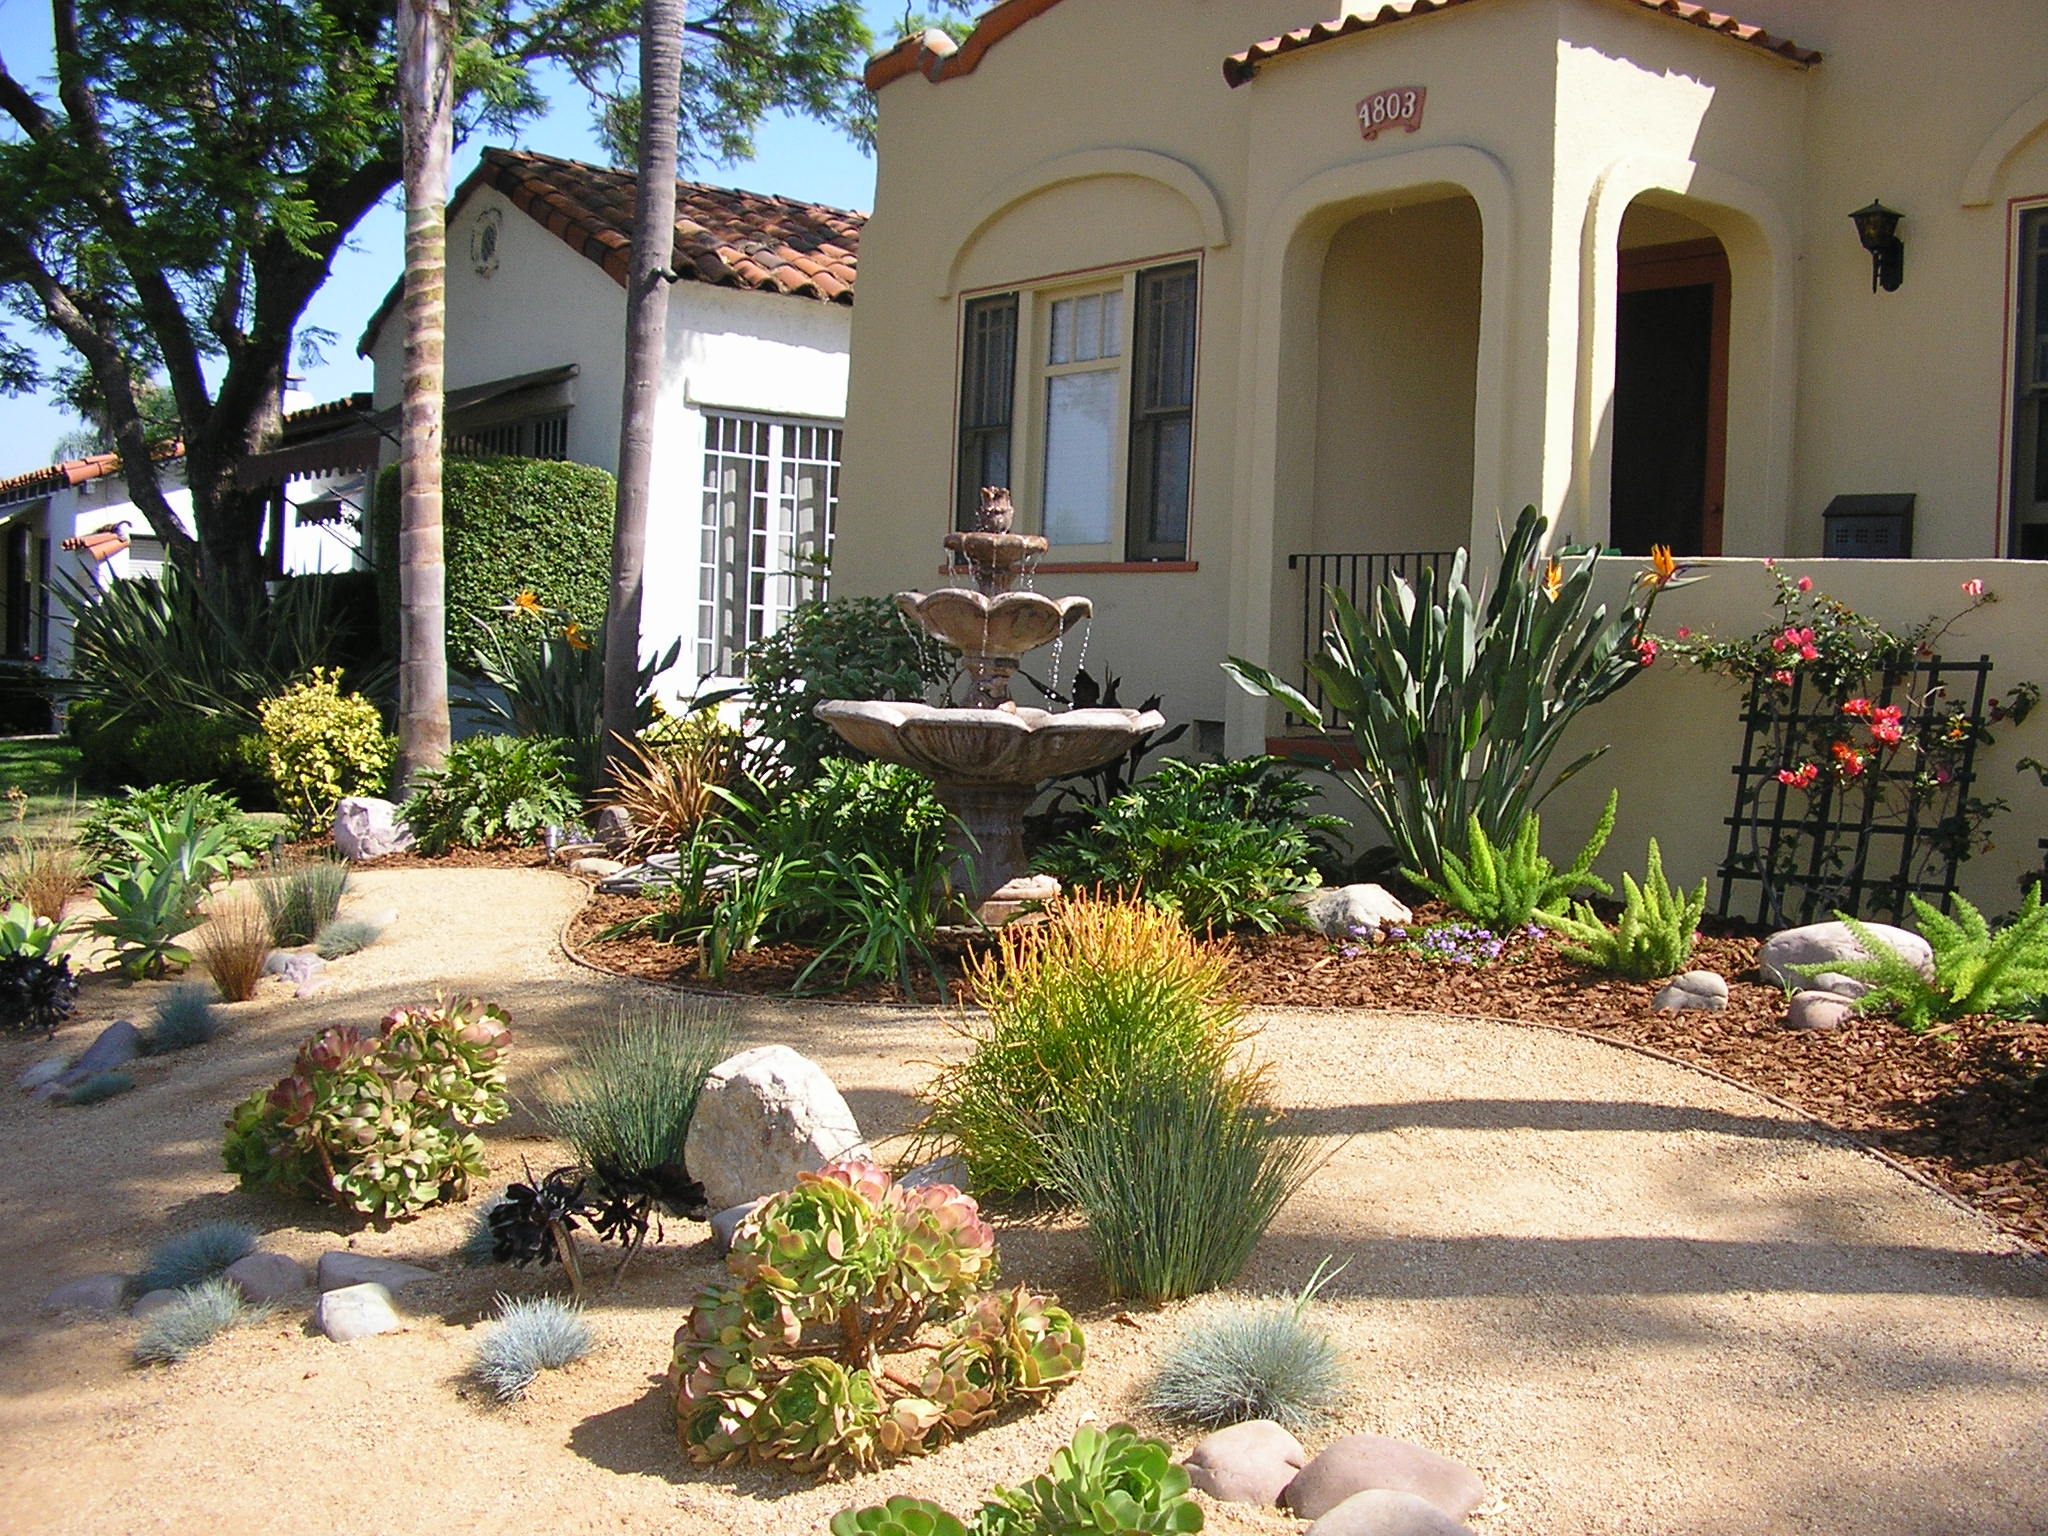 Landscaping Services | Simply Green Landscaping | San Diego